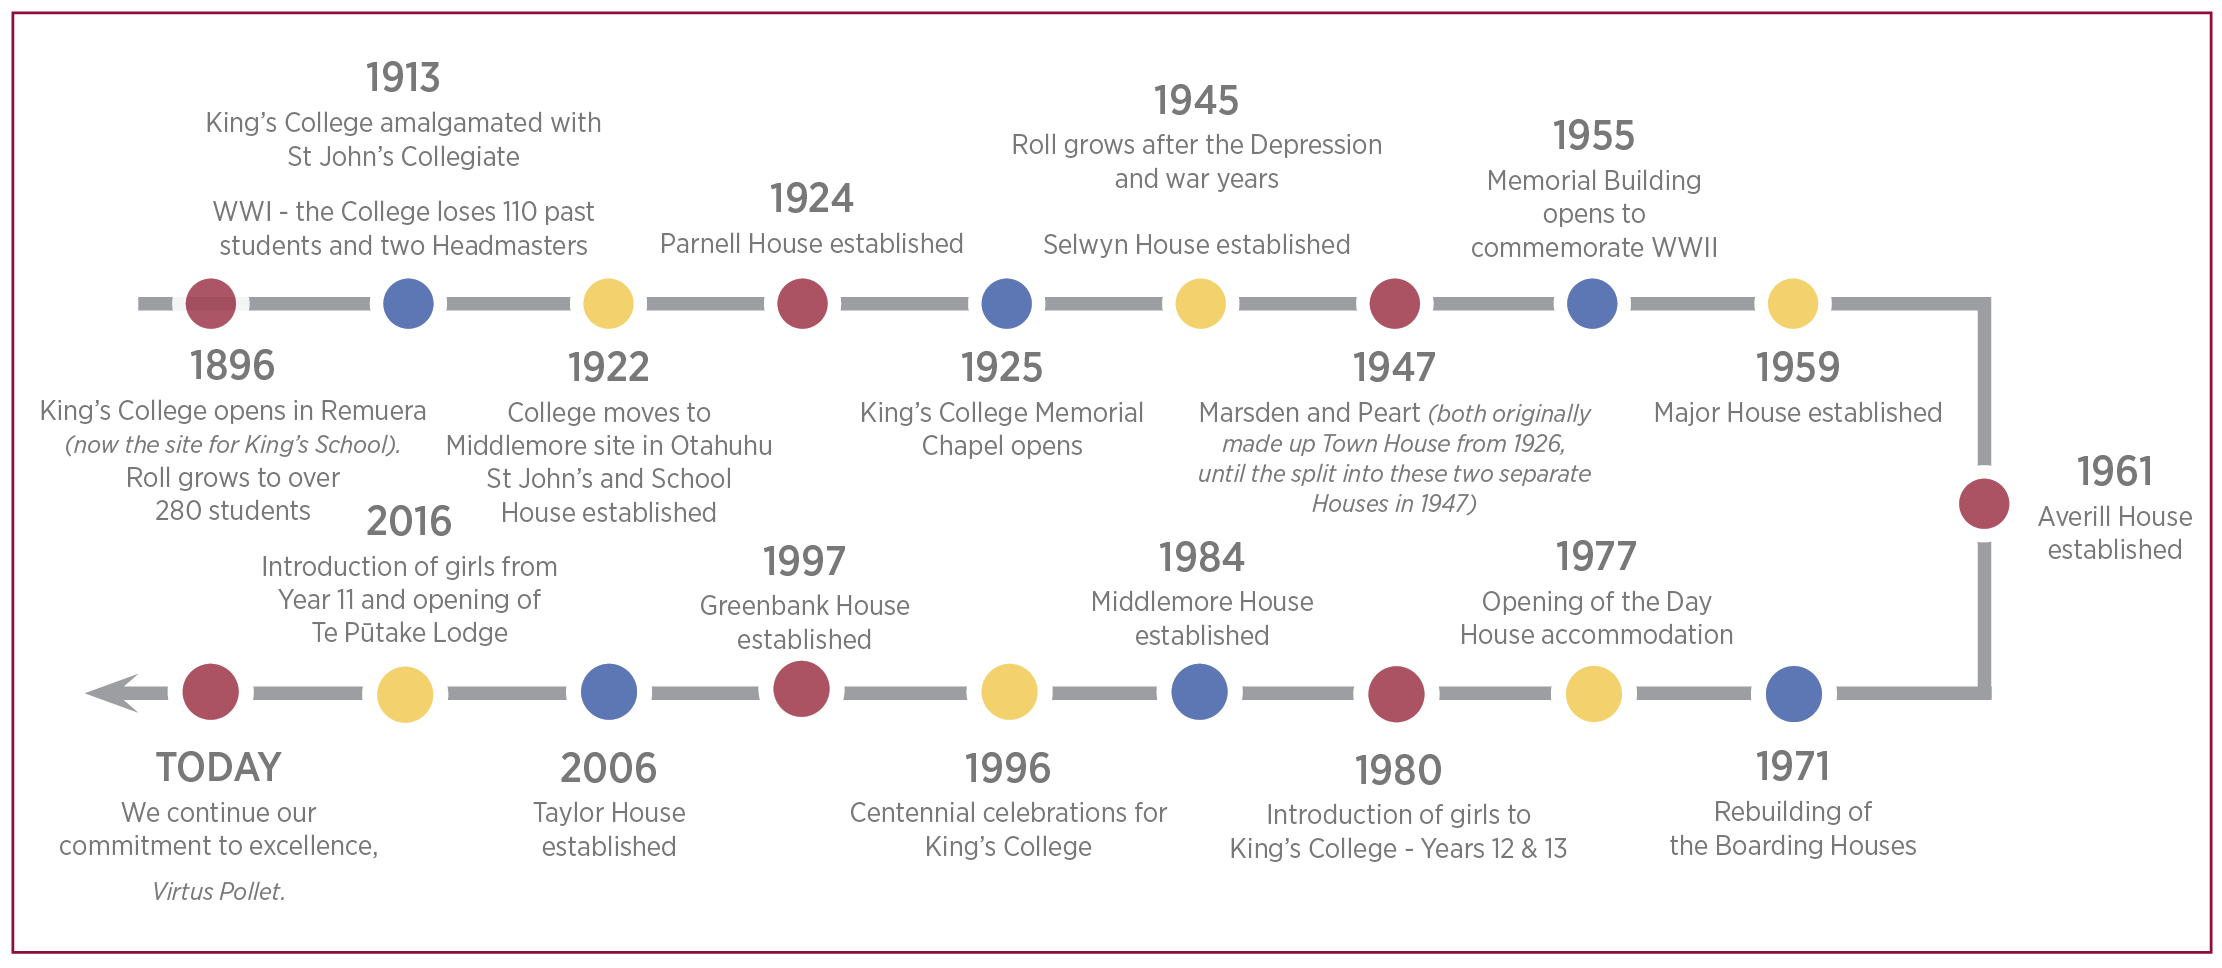 010600 About Kings Our History Timeline Image To Go At Bottom Of Page